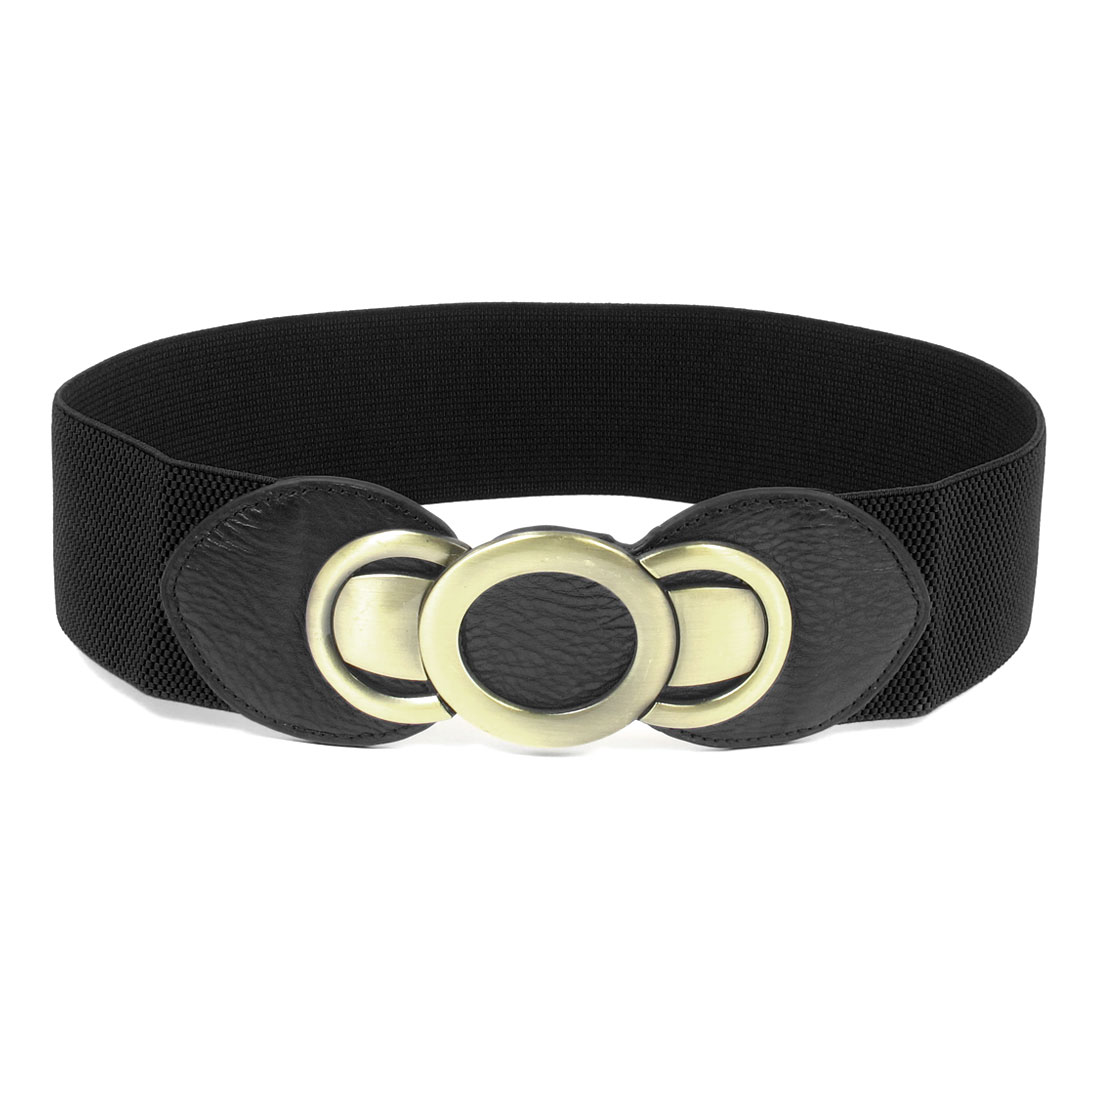 Faux Leather Band Double C Interlocking Buckle Waist Belt for Woman Black